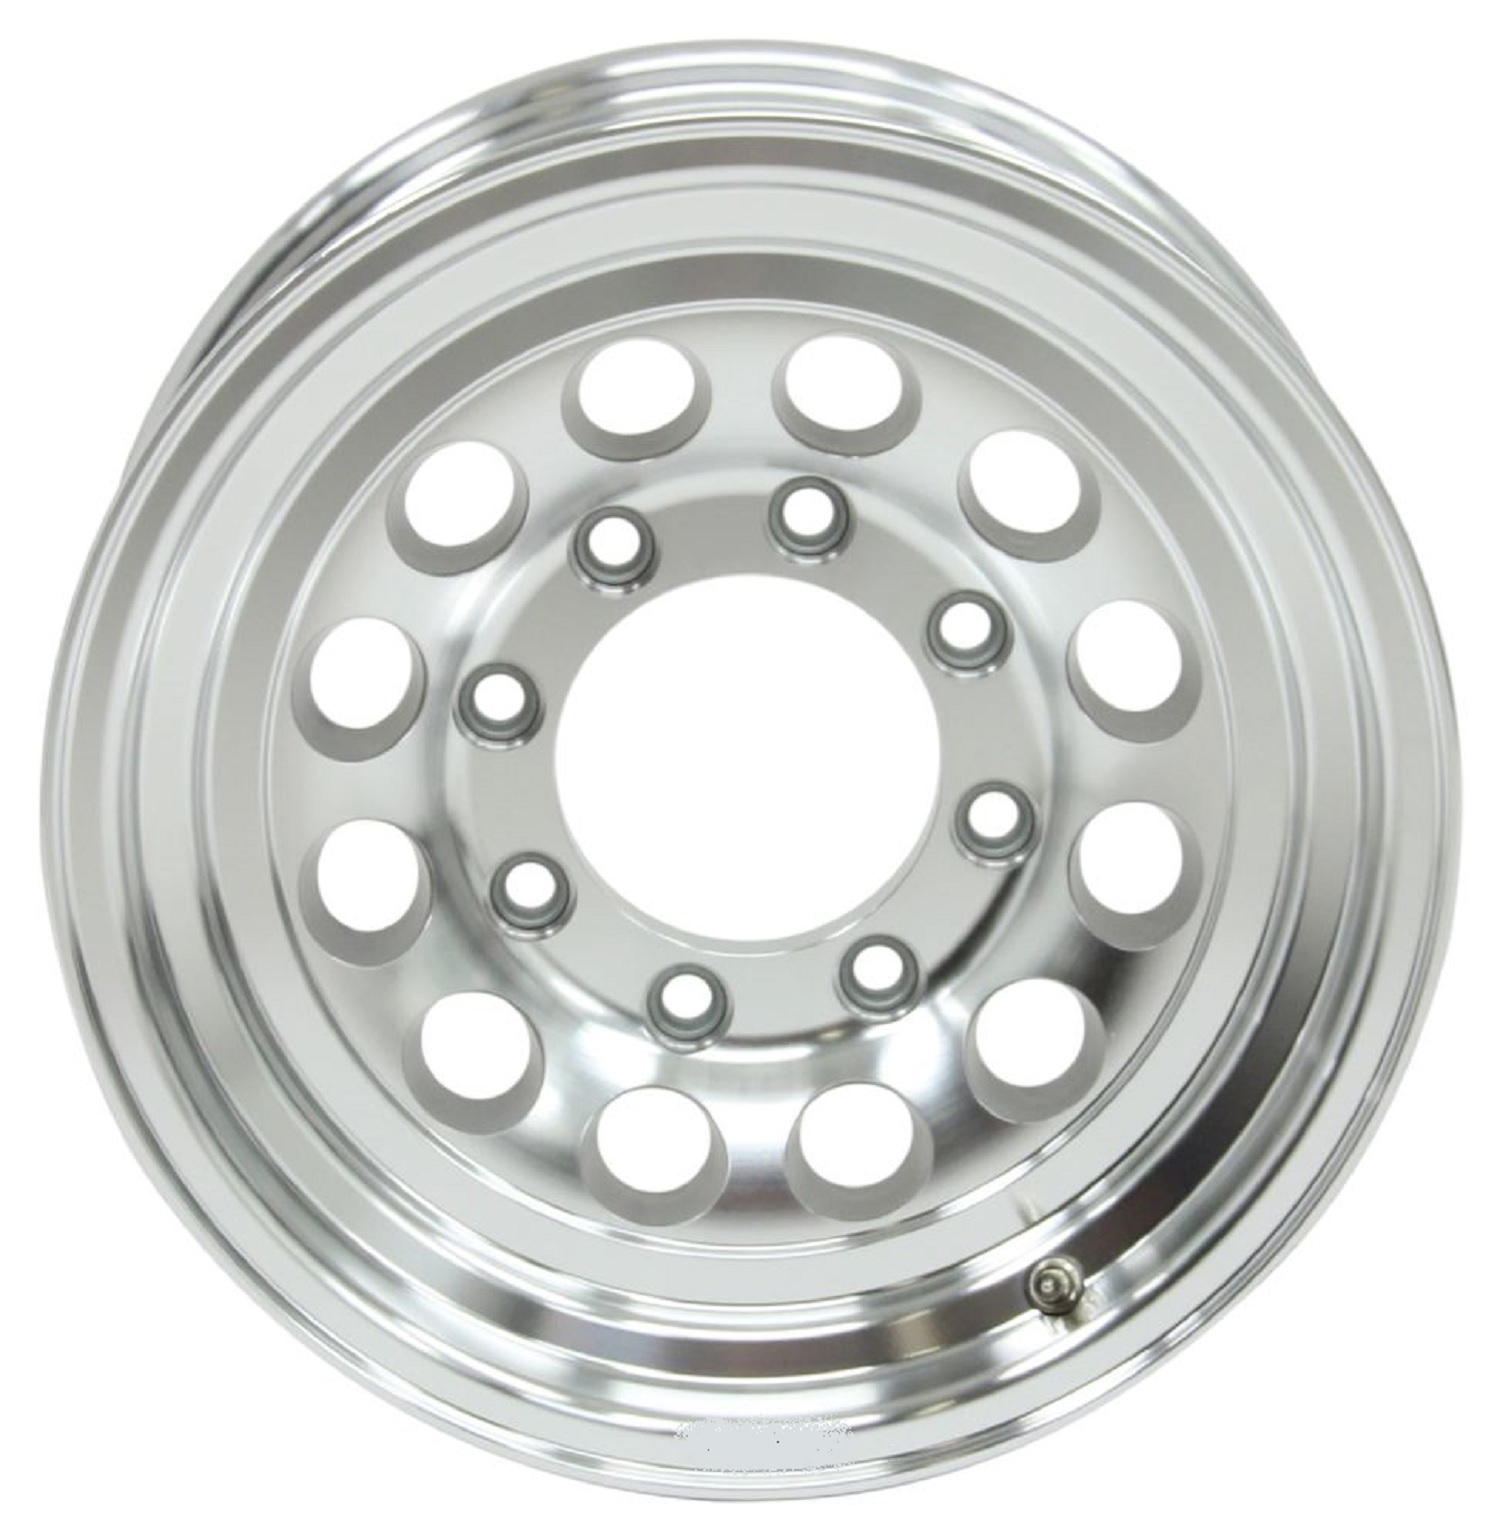 6 Hole 16 Inch Rims Fit : Aluminum trailer wheel rim modular lug on